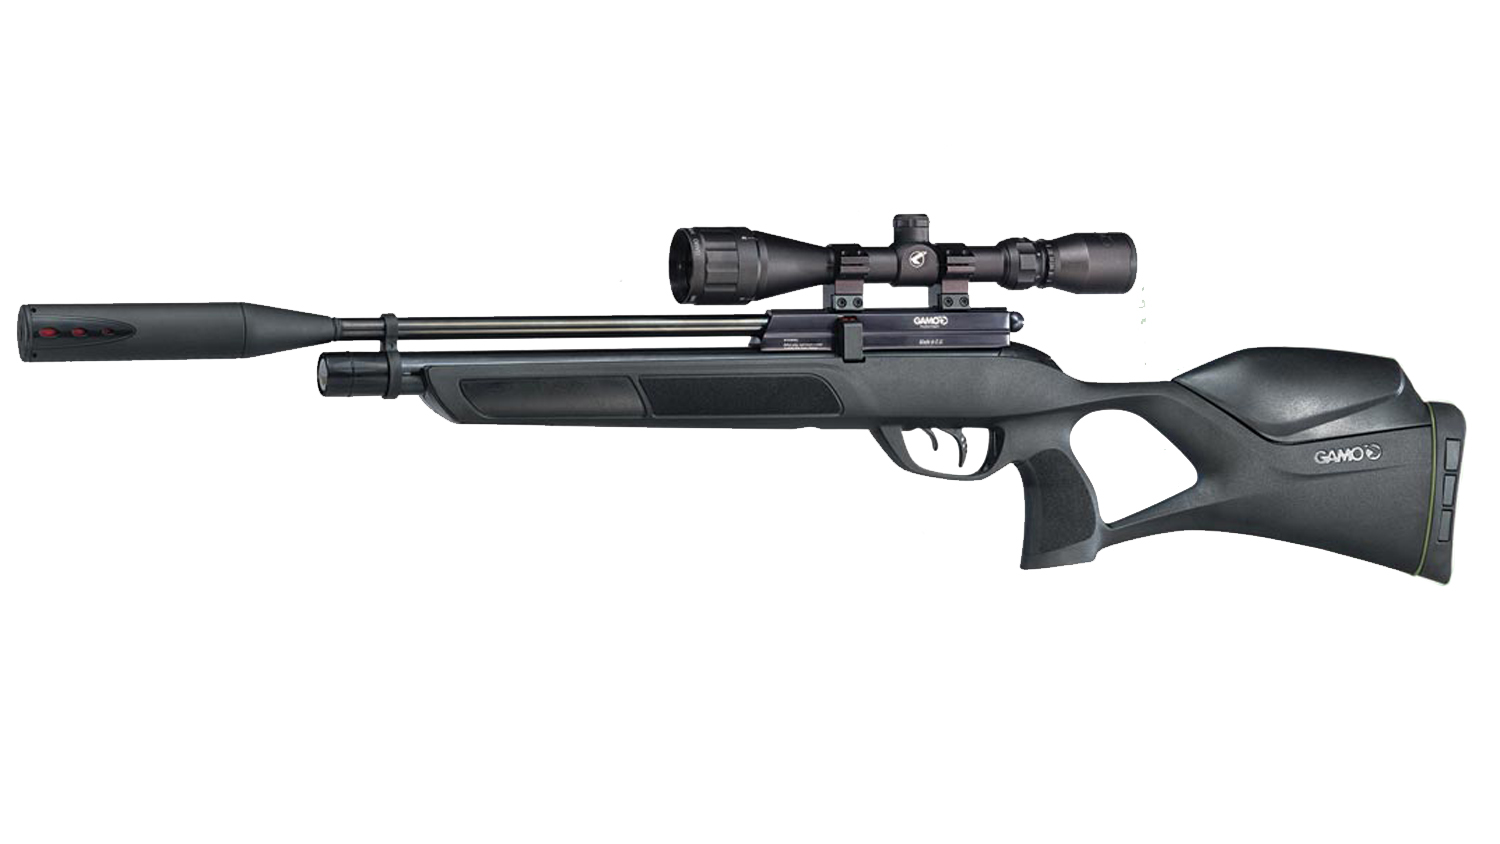 Airguns, Airguns, And More Airguns